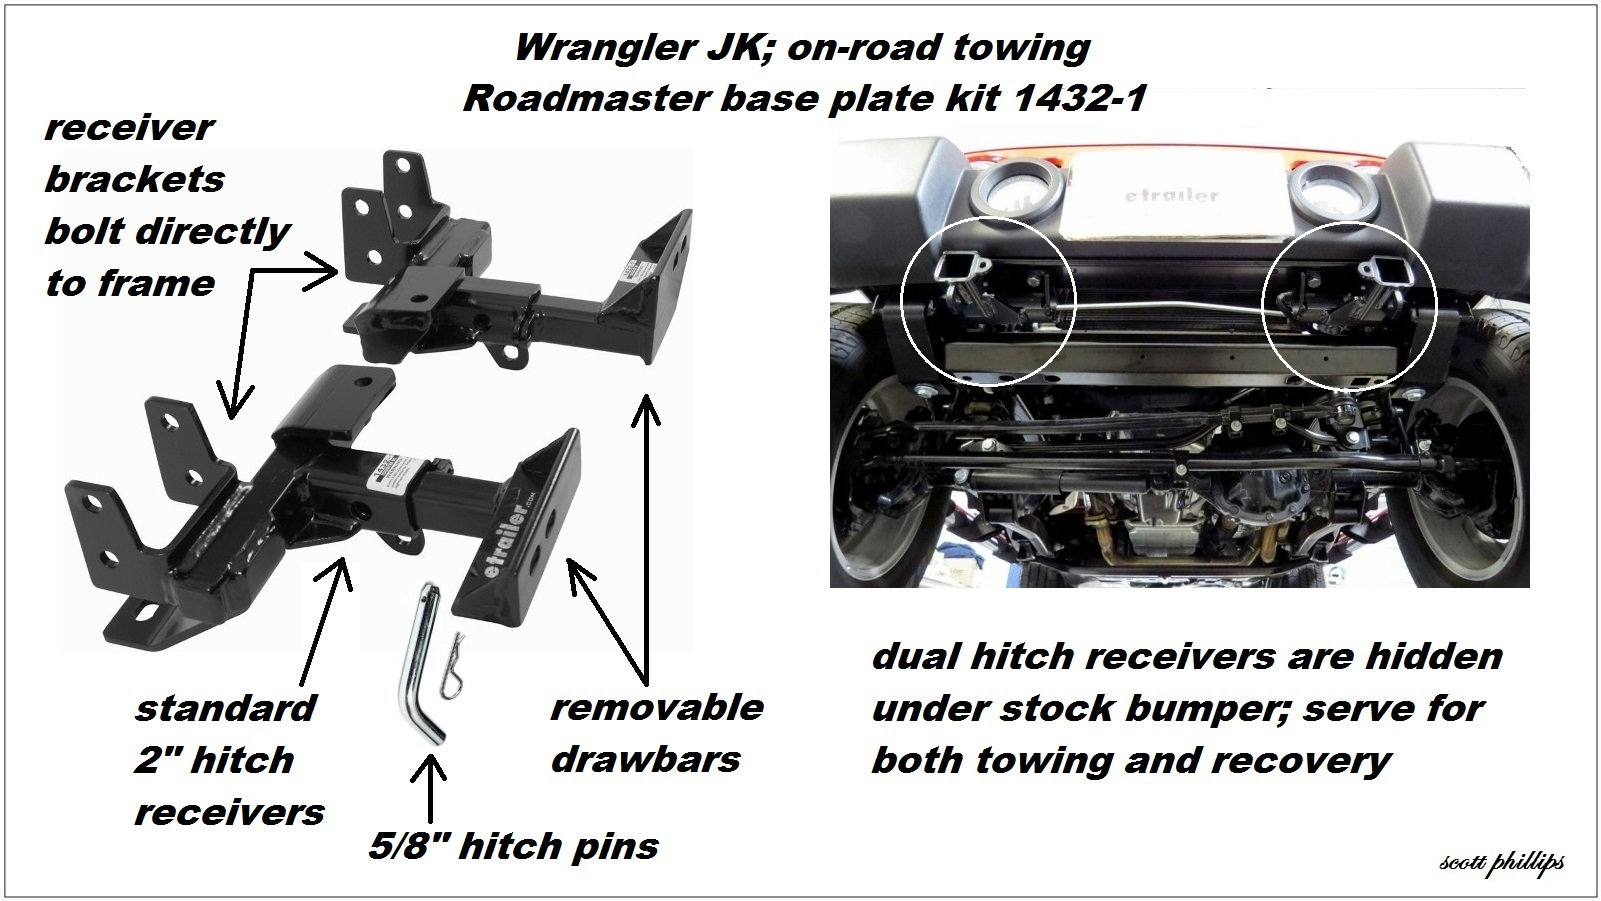 Jeep Wrangler Jk How To Two Forum Trailer Hitch Wiring Figure 1 Roadmaster Base Plates